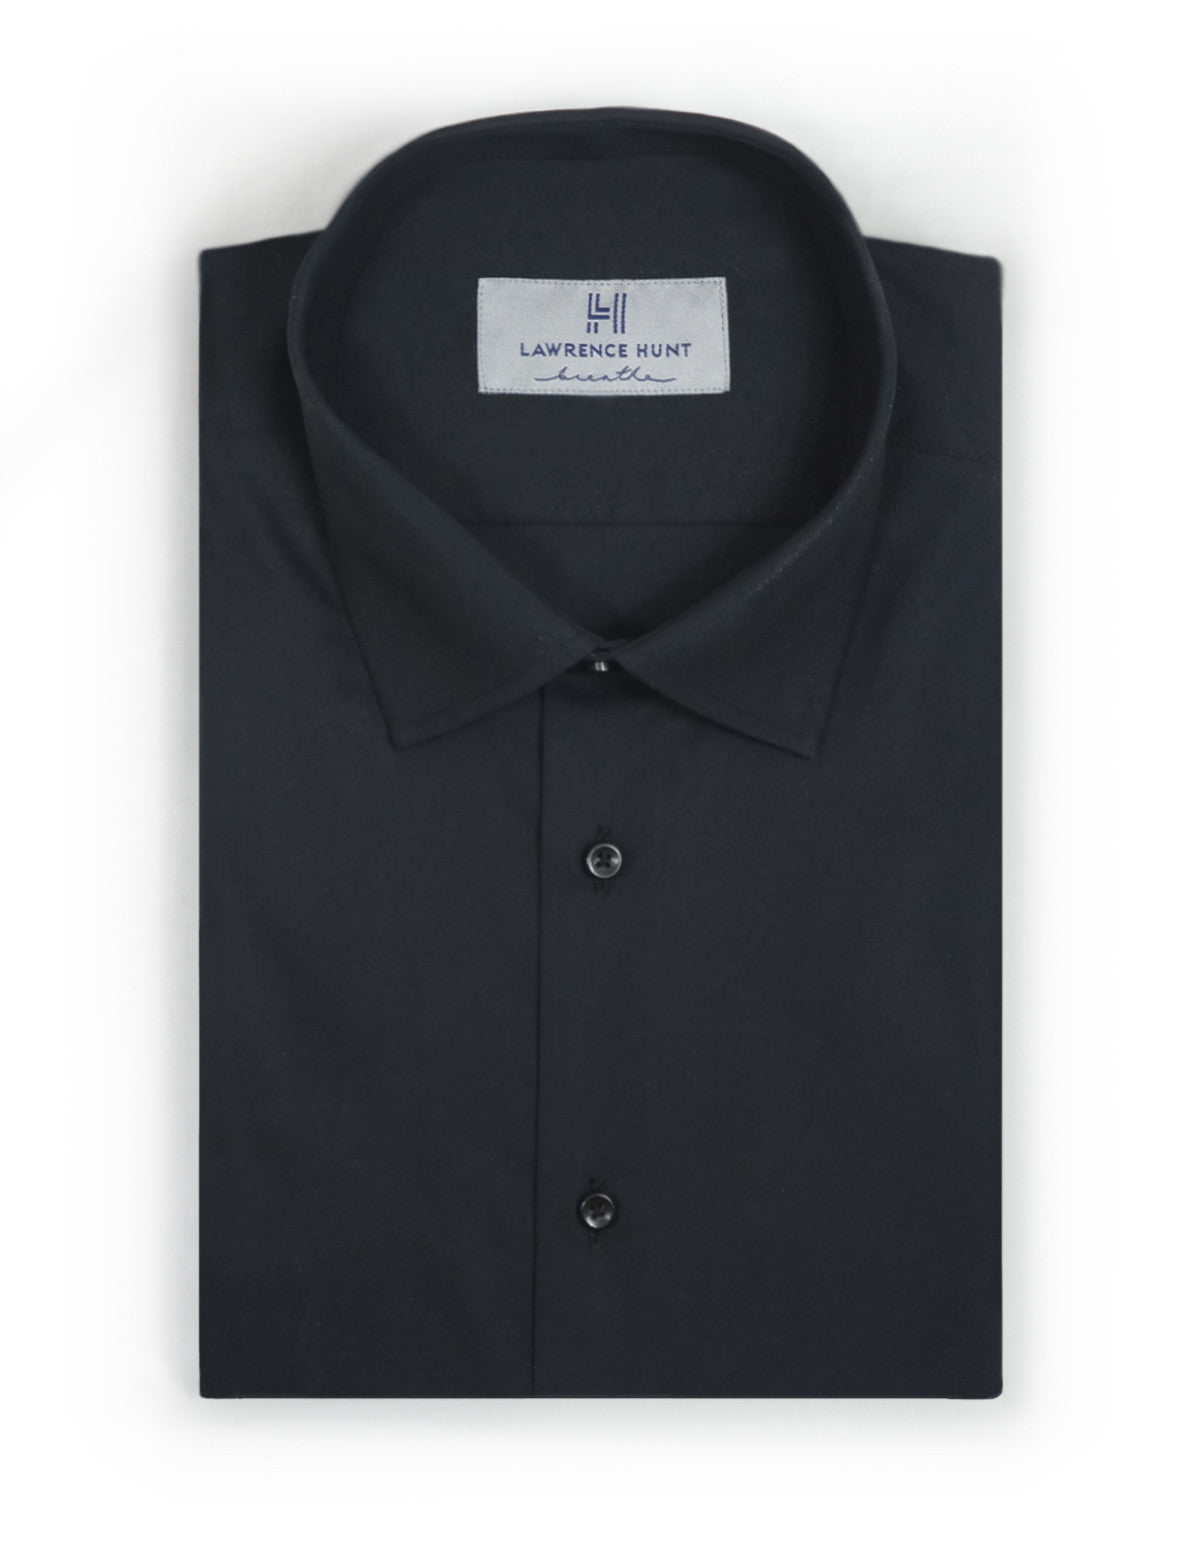 Performance Dress Shirts Sweat Wicking Breathable Lawrence Hunt